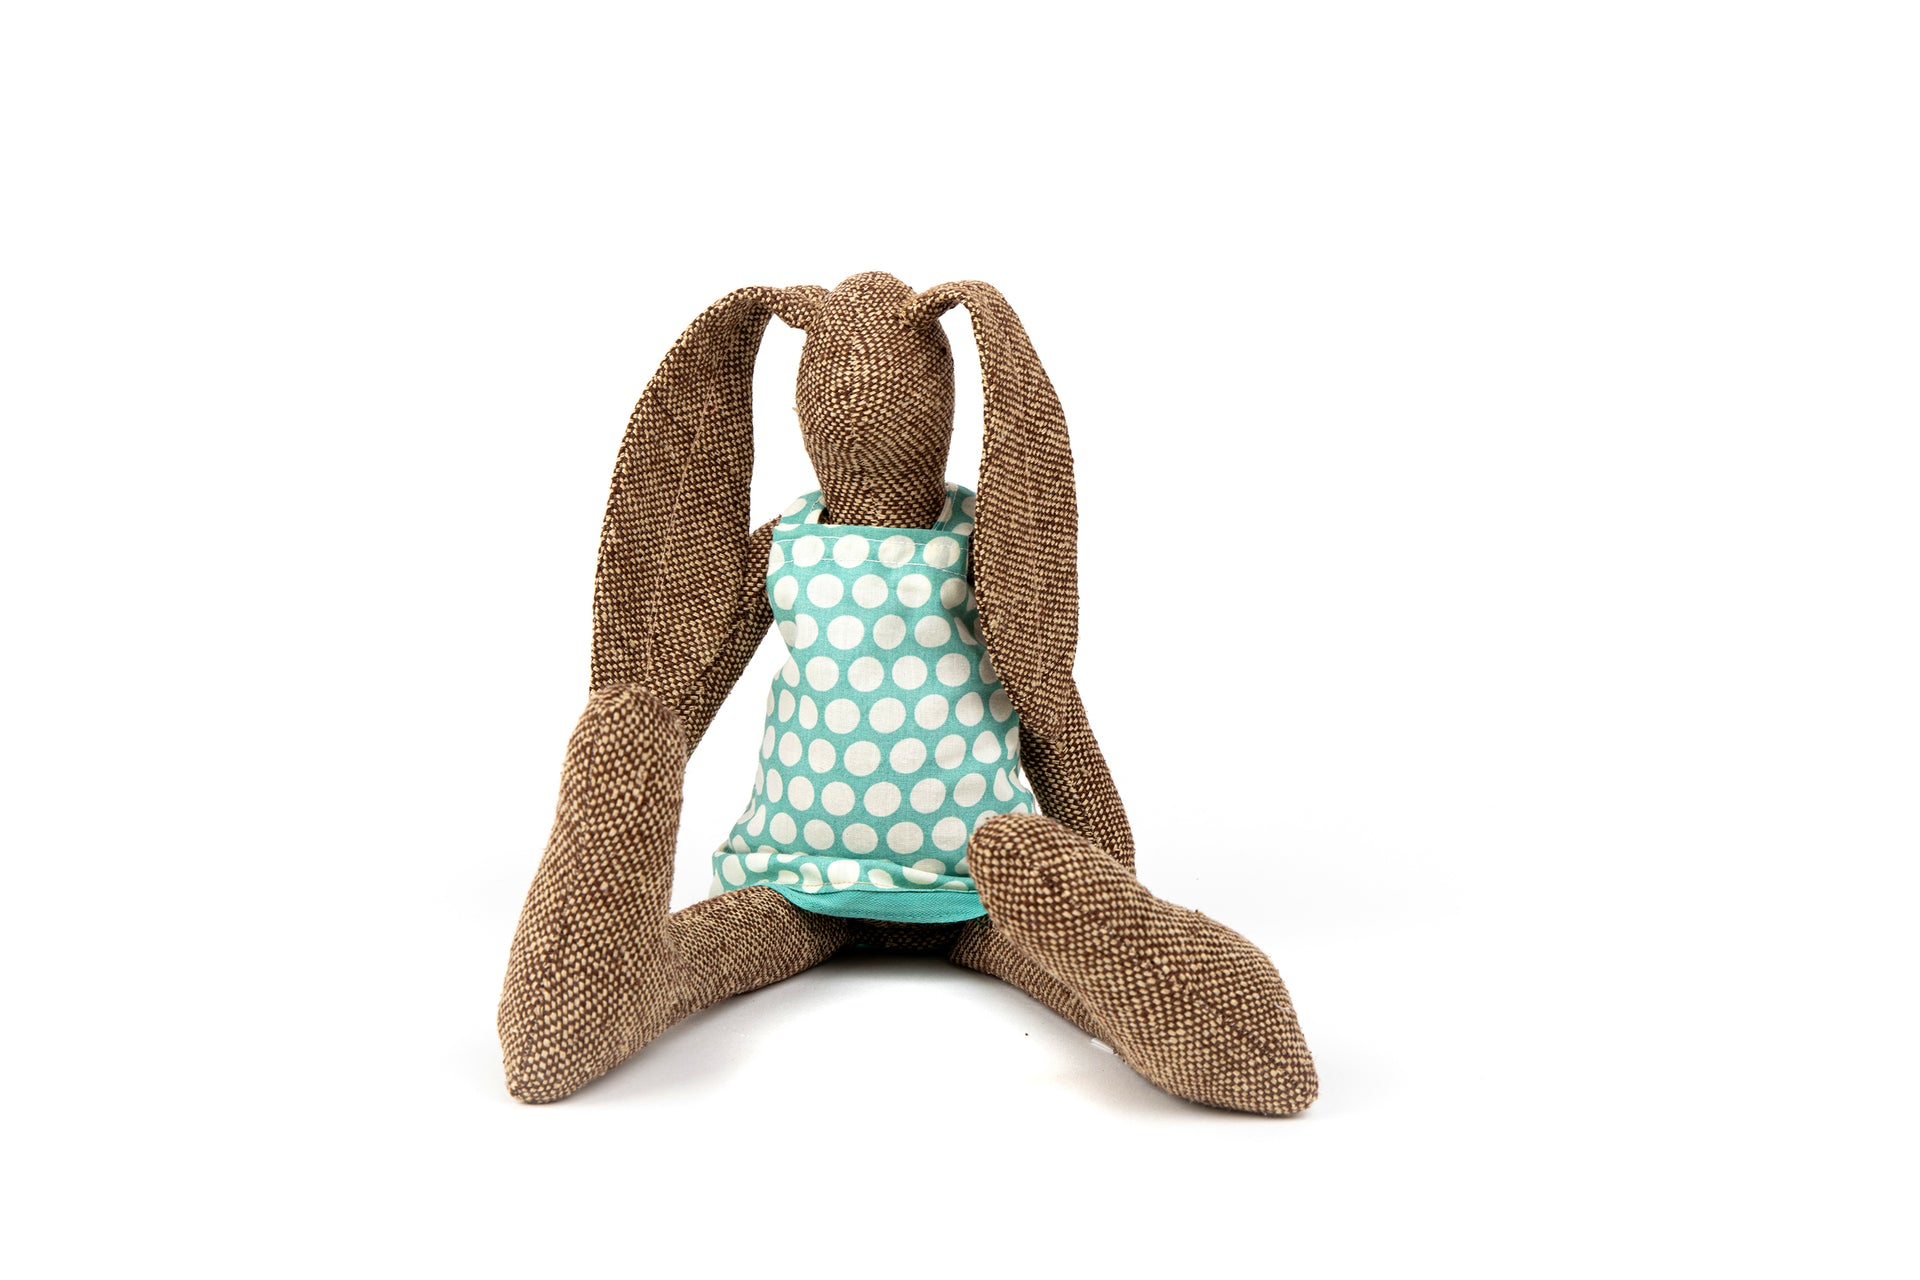 Modern nursery décor, Animal doll, Handmade bunny, Art doll, Stuffed animal, Rabbit doll, Fabric doll, Ecofriendly gift, Cloth doll,Fine toy